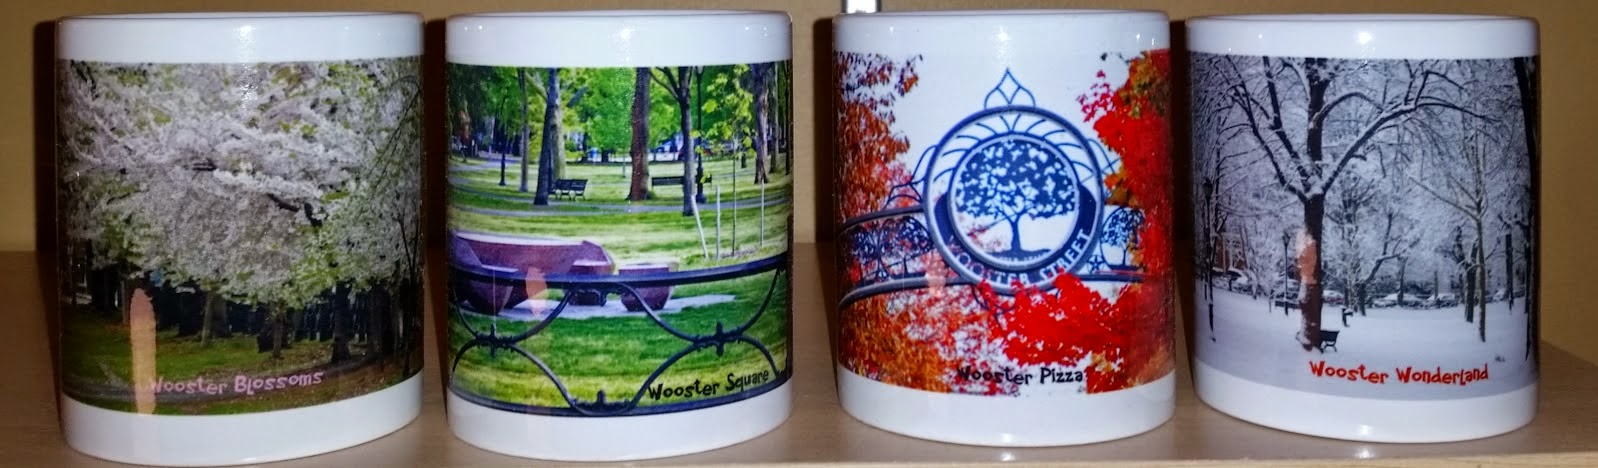 Wooster Square Four Seasons Mugs